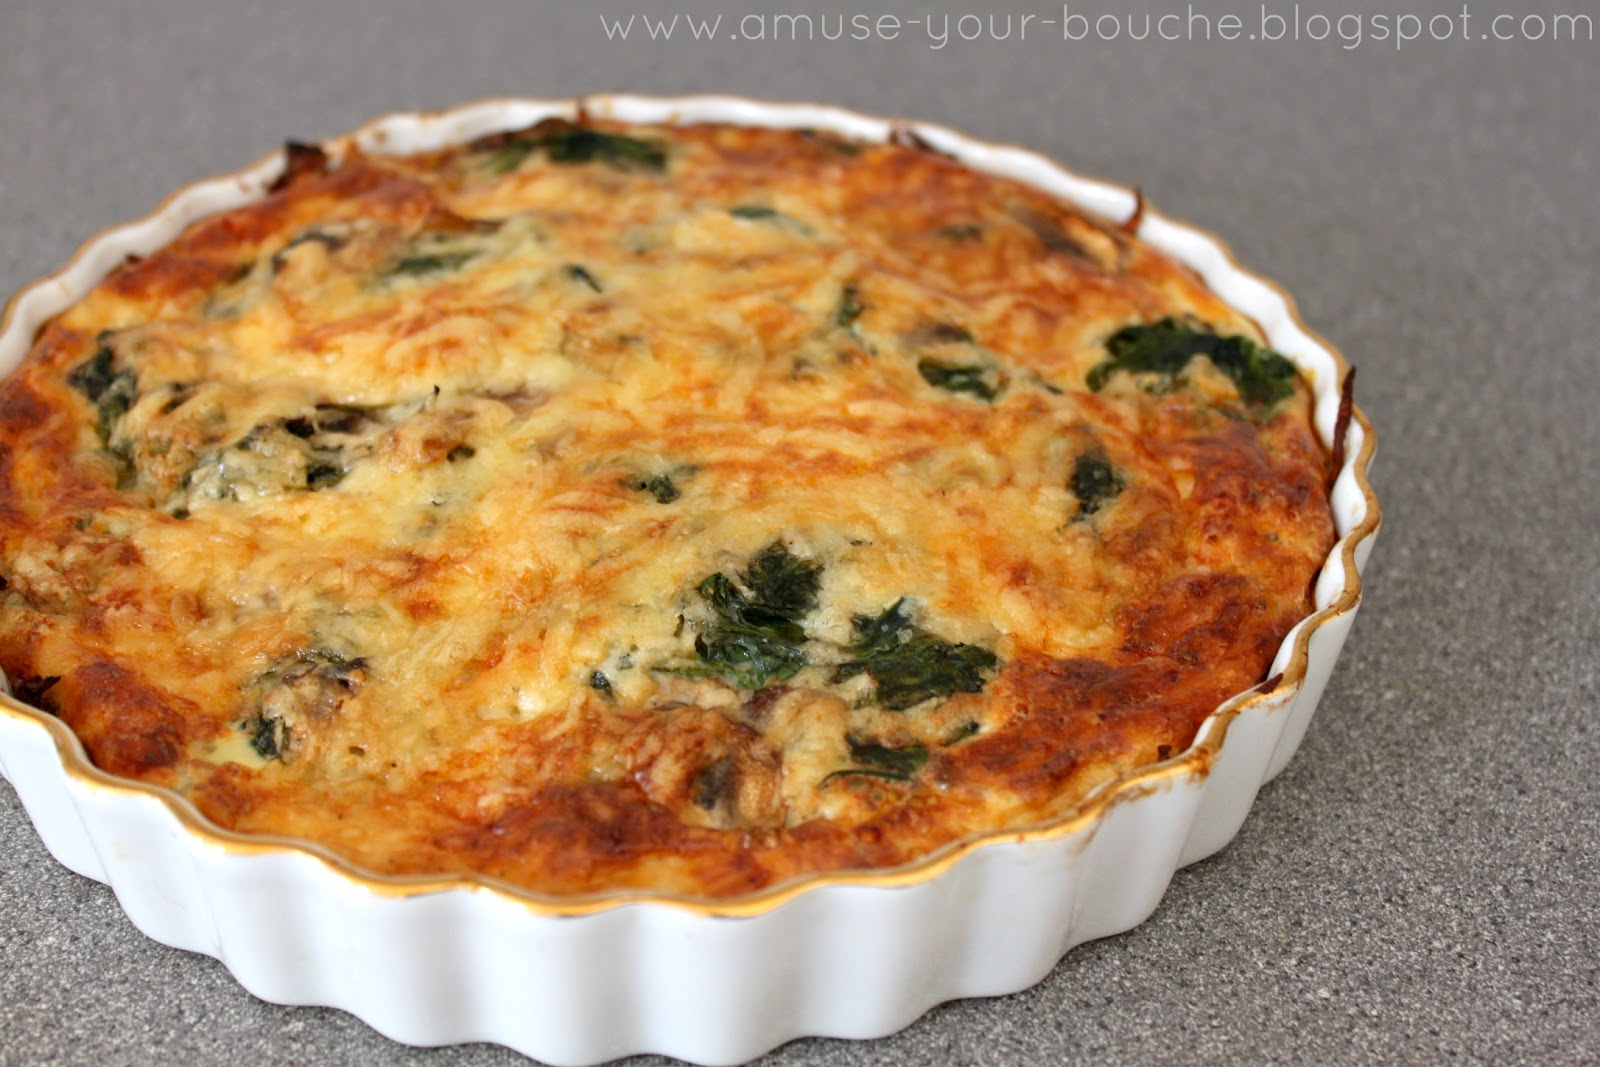 Spinach and mushroom quiche with potato hash crust - Amuse Your Bouche